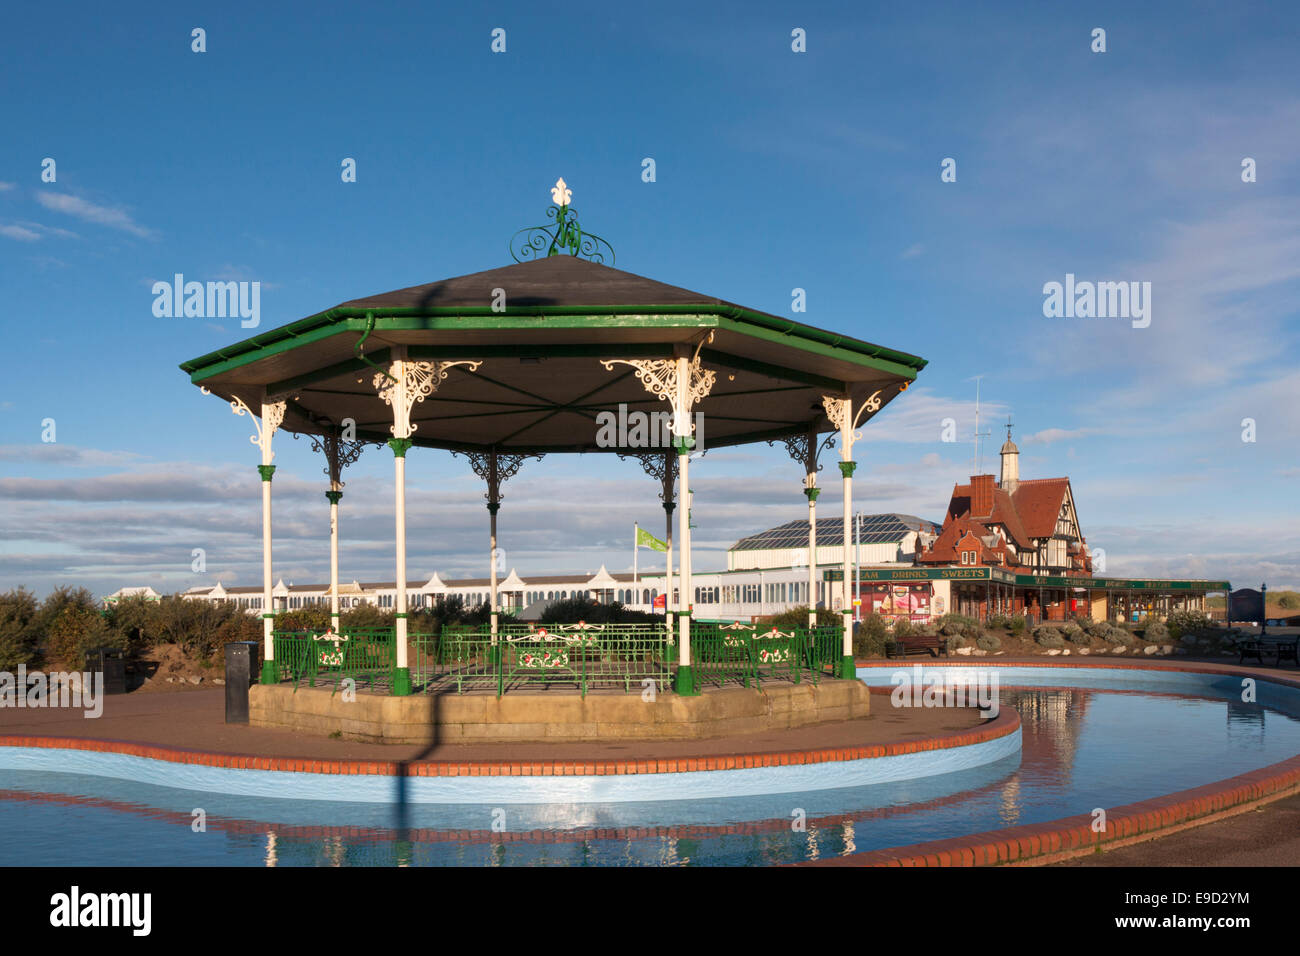 St Annes pier and bandstand - Stock Image